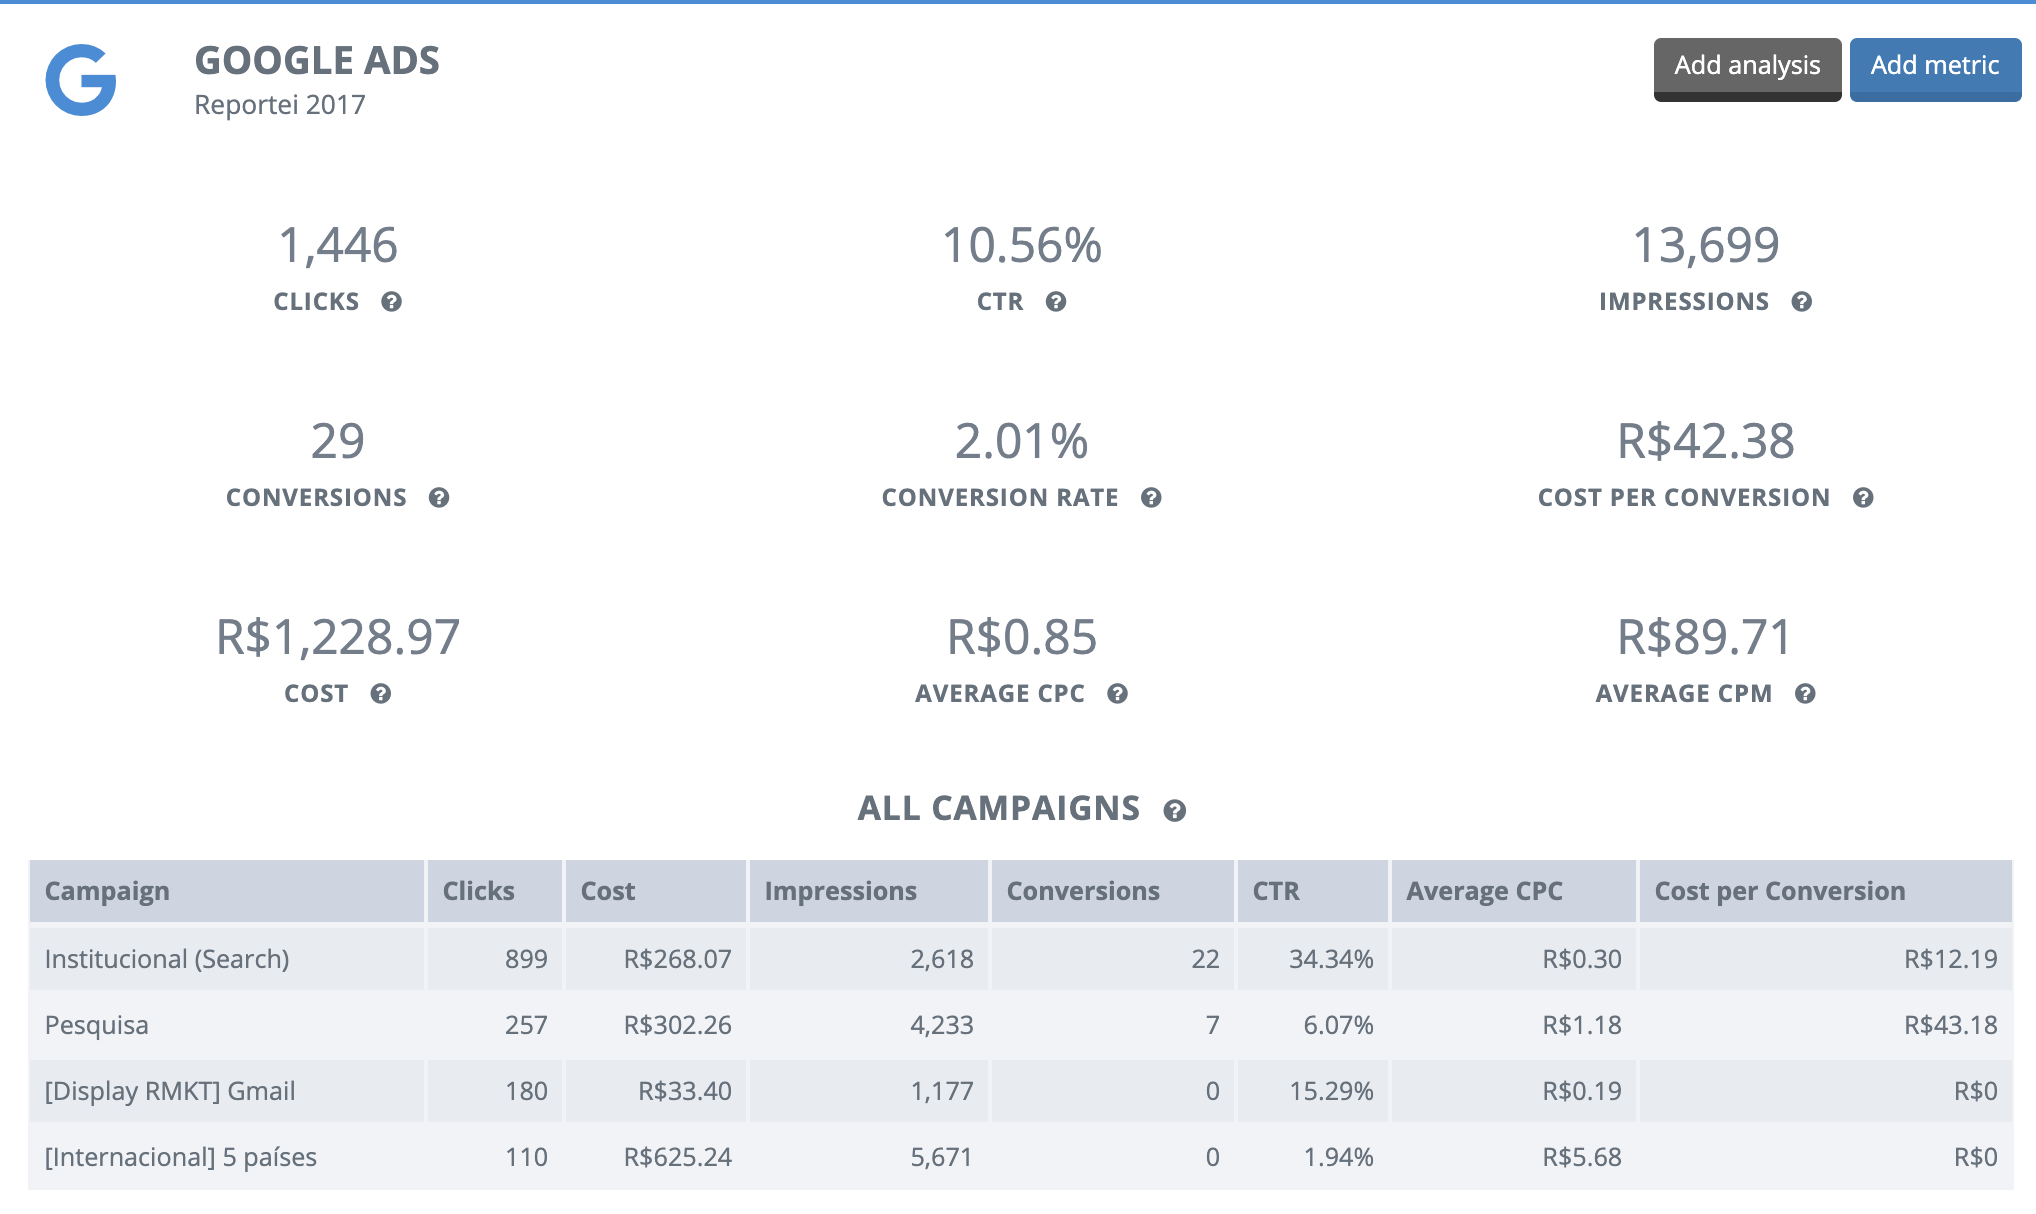 Google Ads (Adwords) Reports